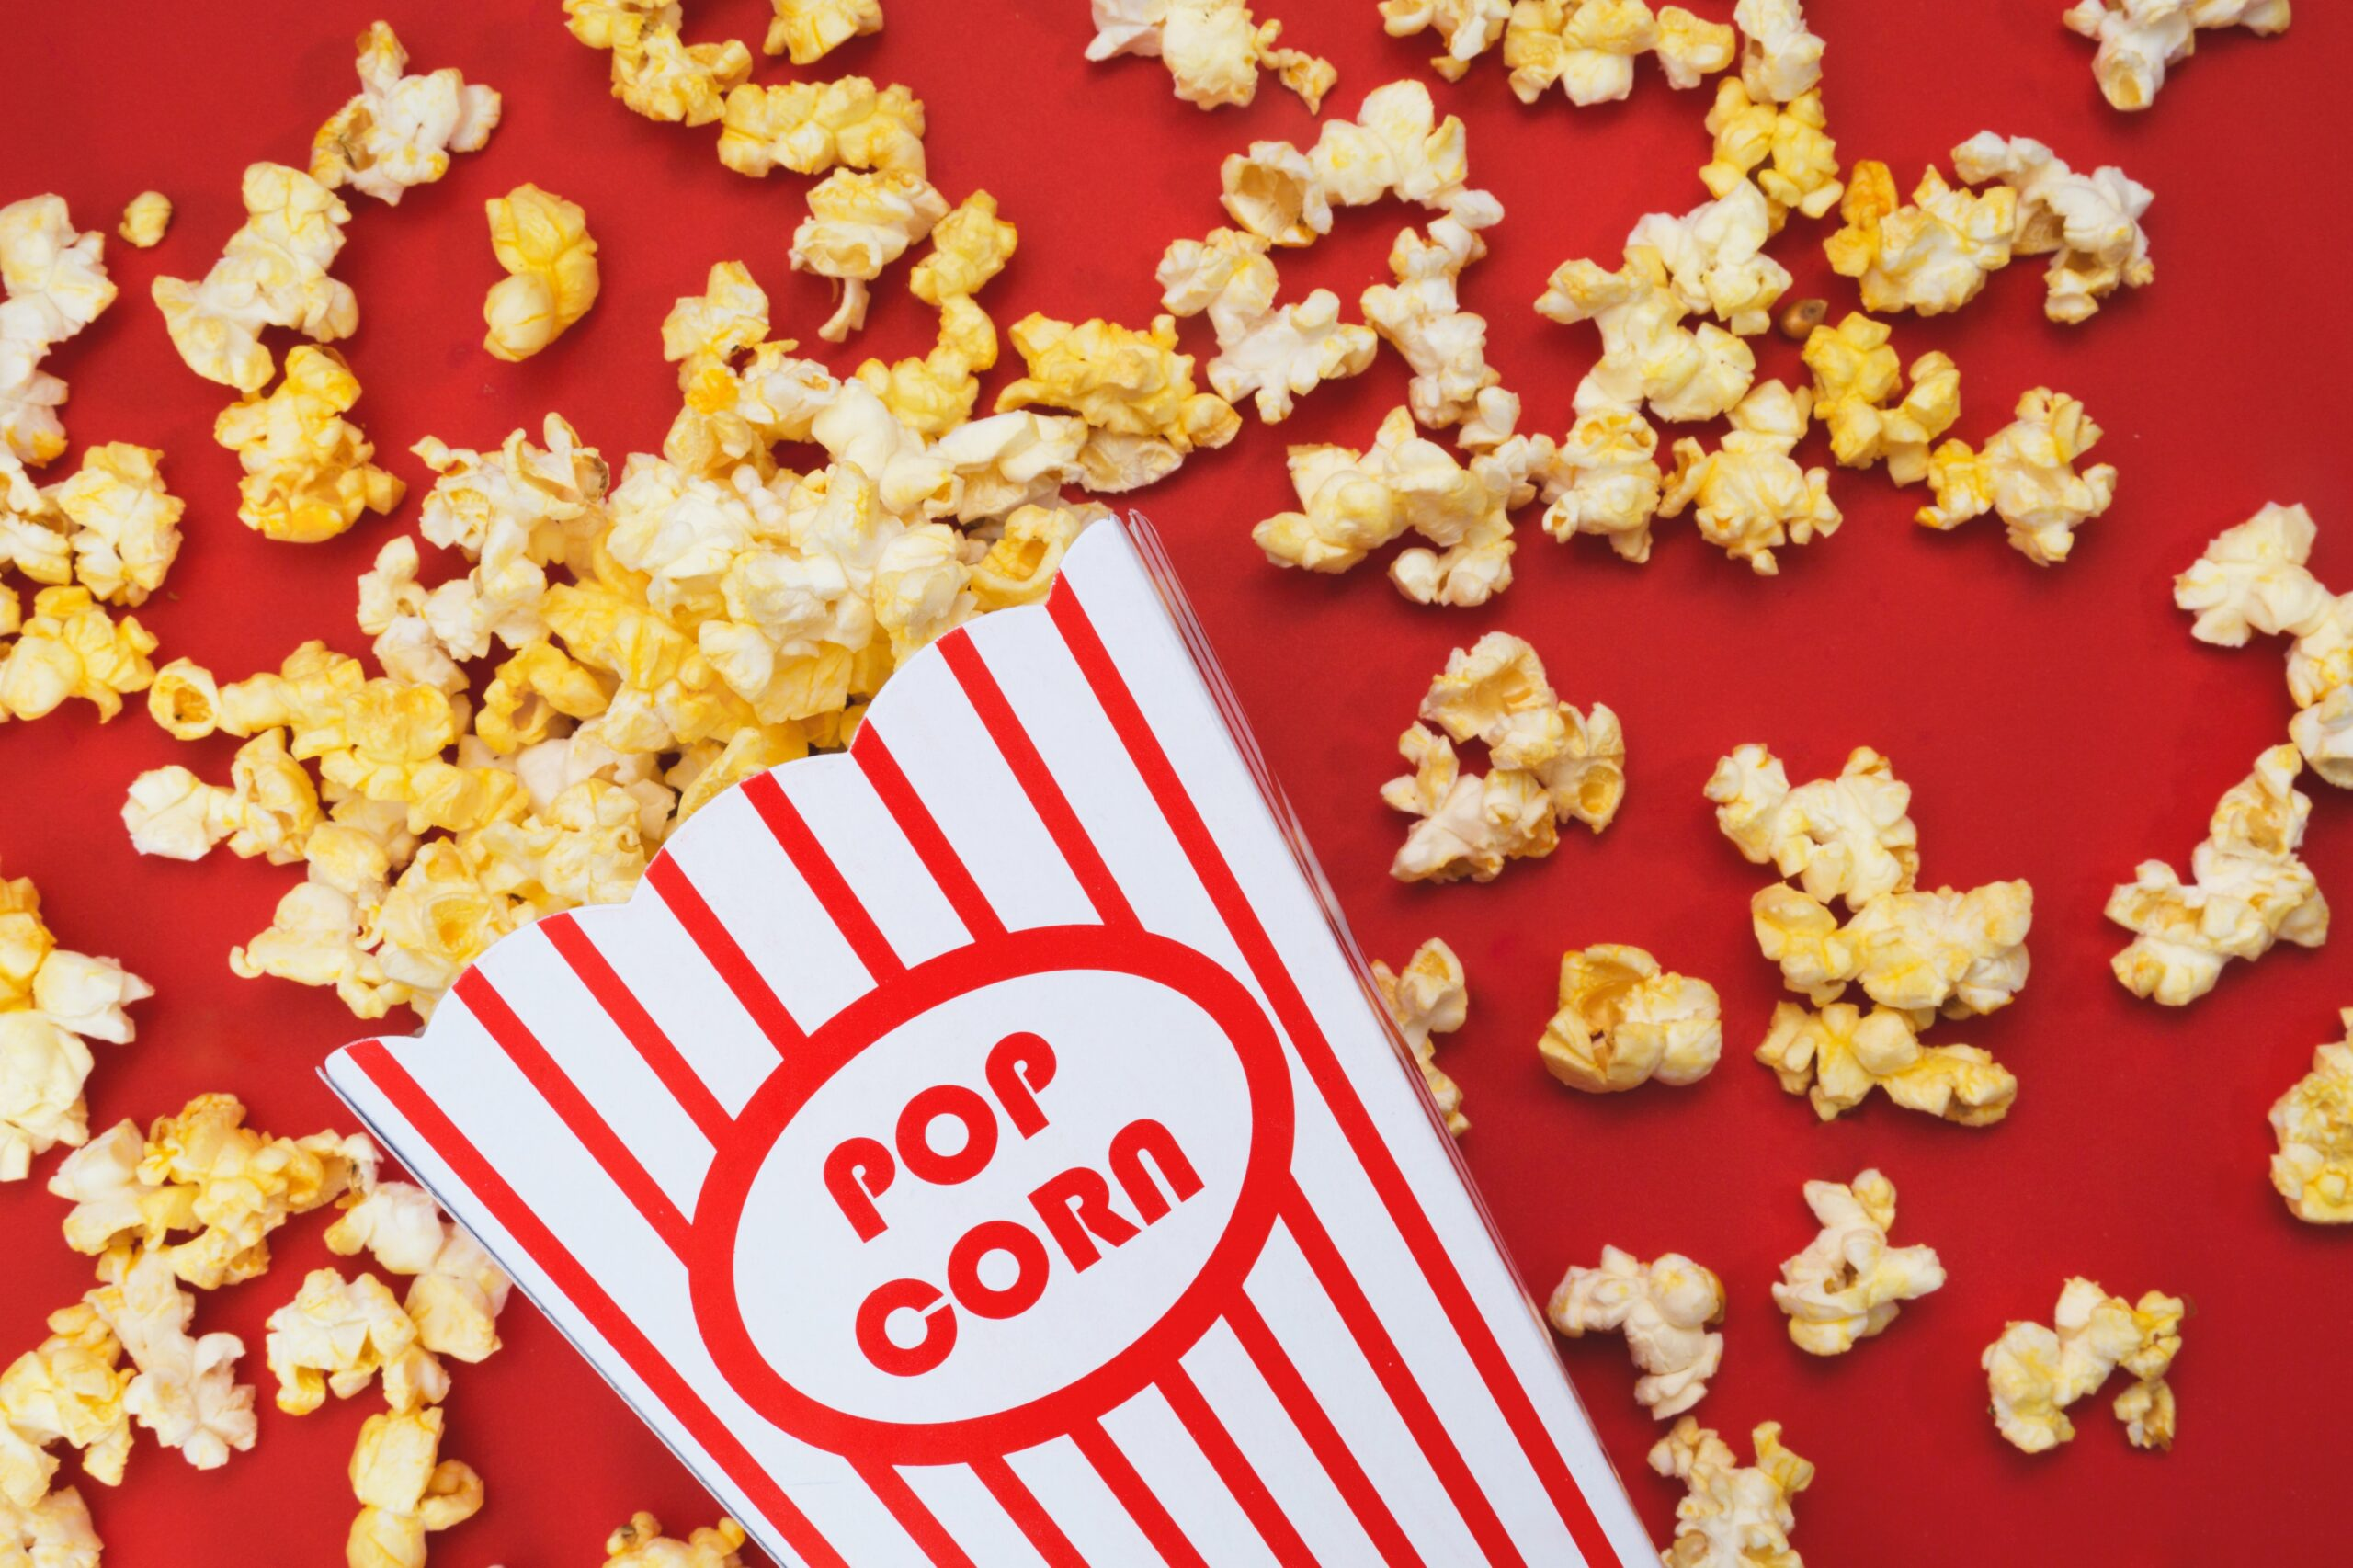 movie popcorn in striped box with popcorn spilling onto red background